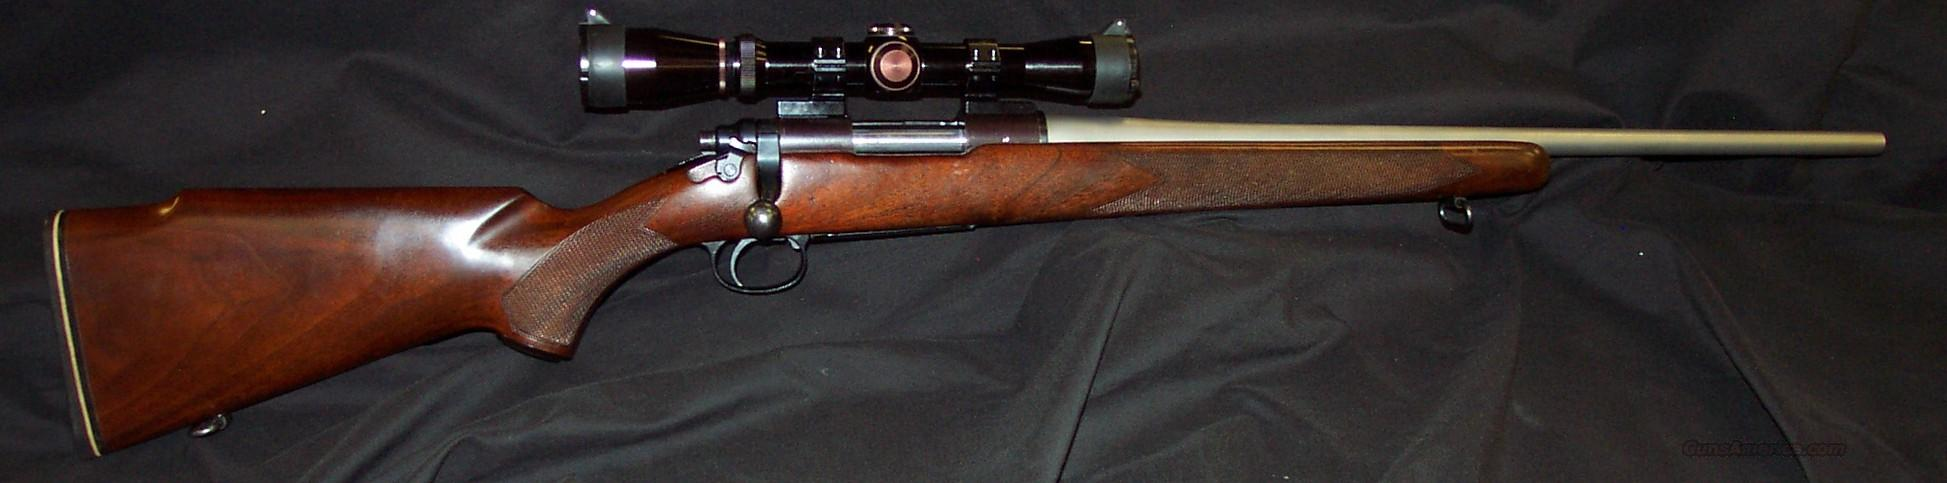 Remington Model 725  Guns > Rifles > Remington Rifles - Modern > Model 700 > Sporting